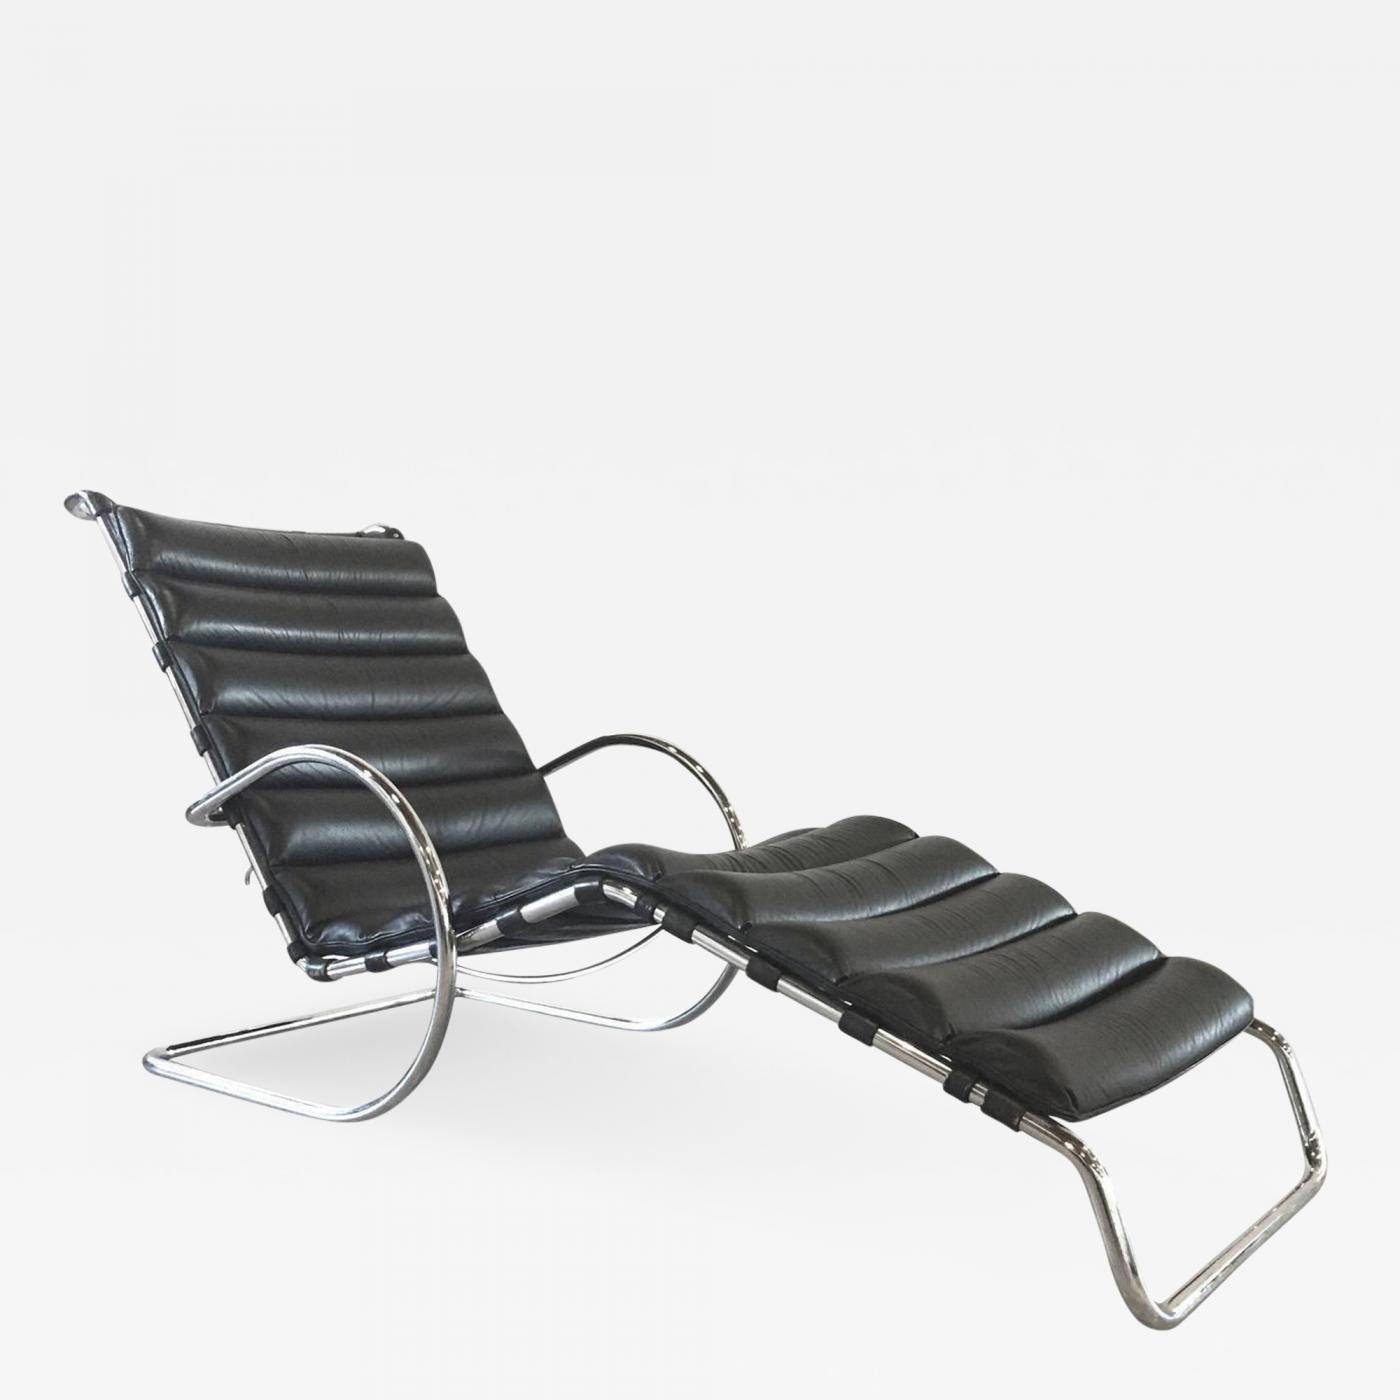 Black leather chaise longue le corbusier furniture for Chaise lounge black